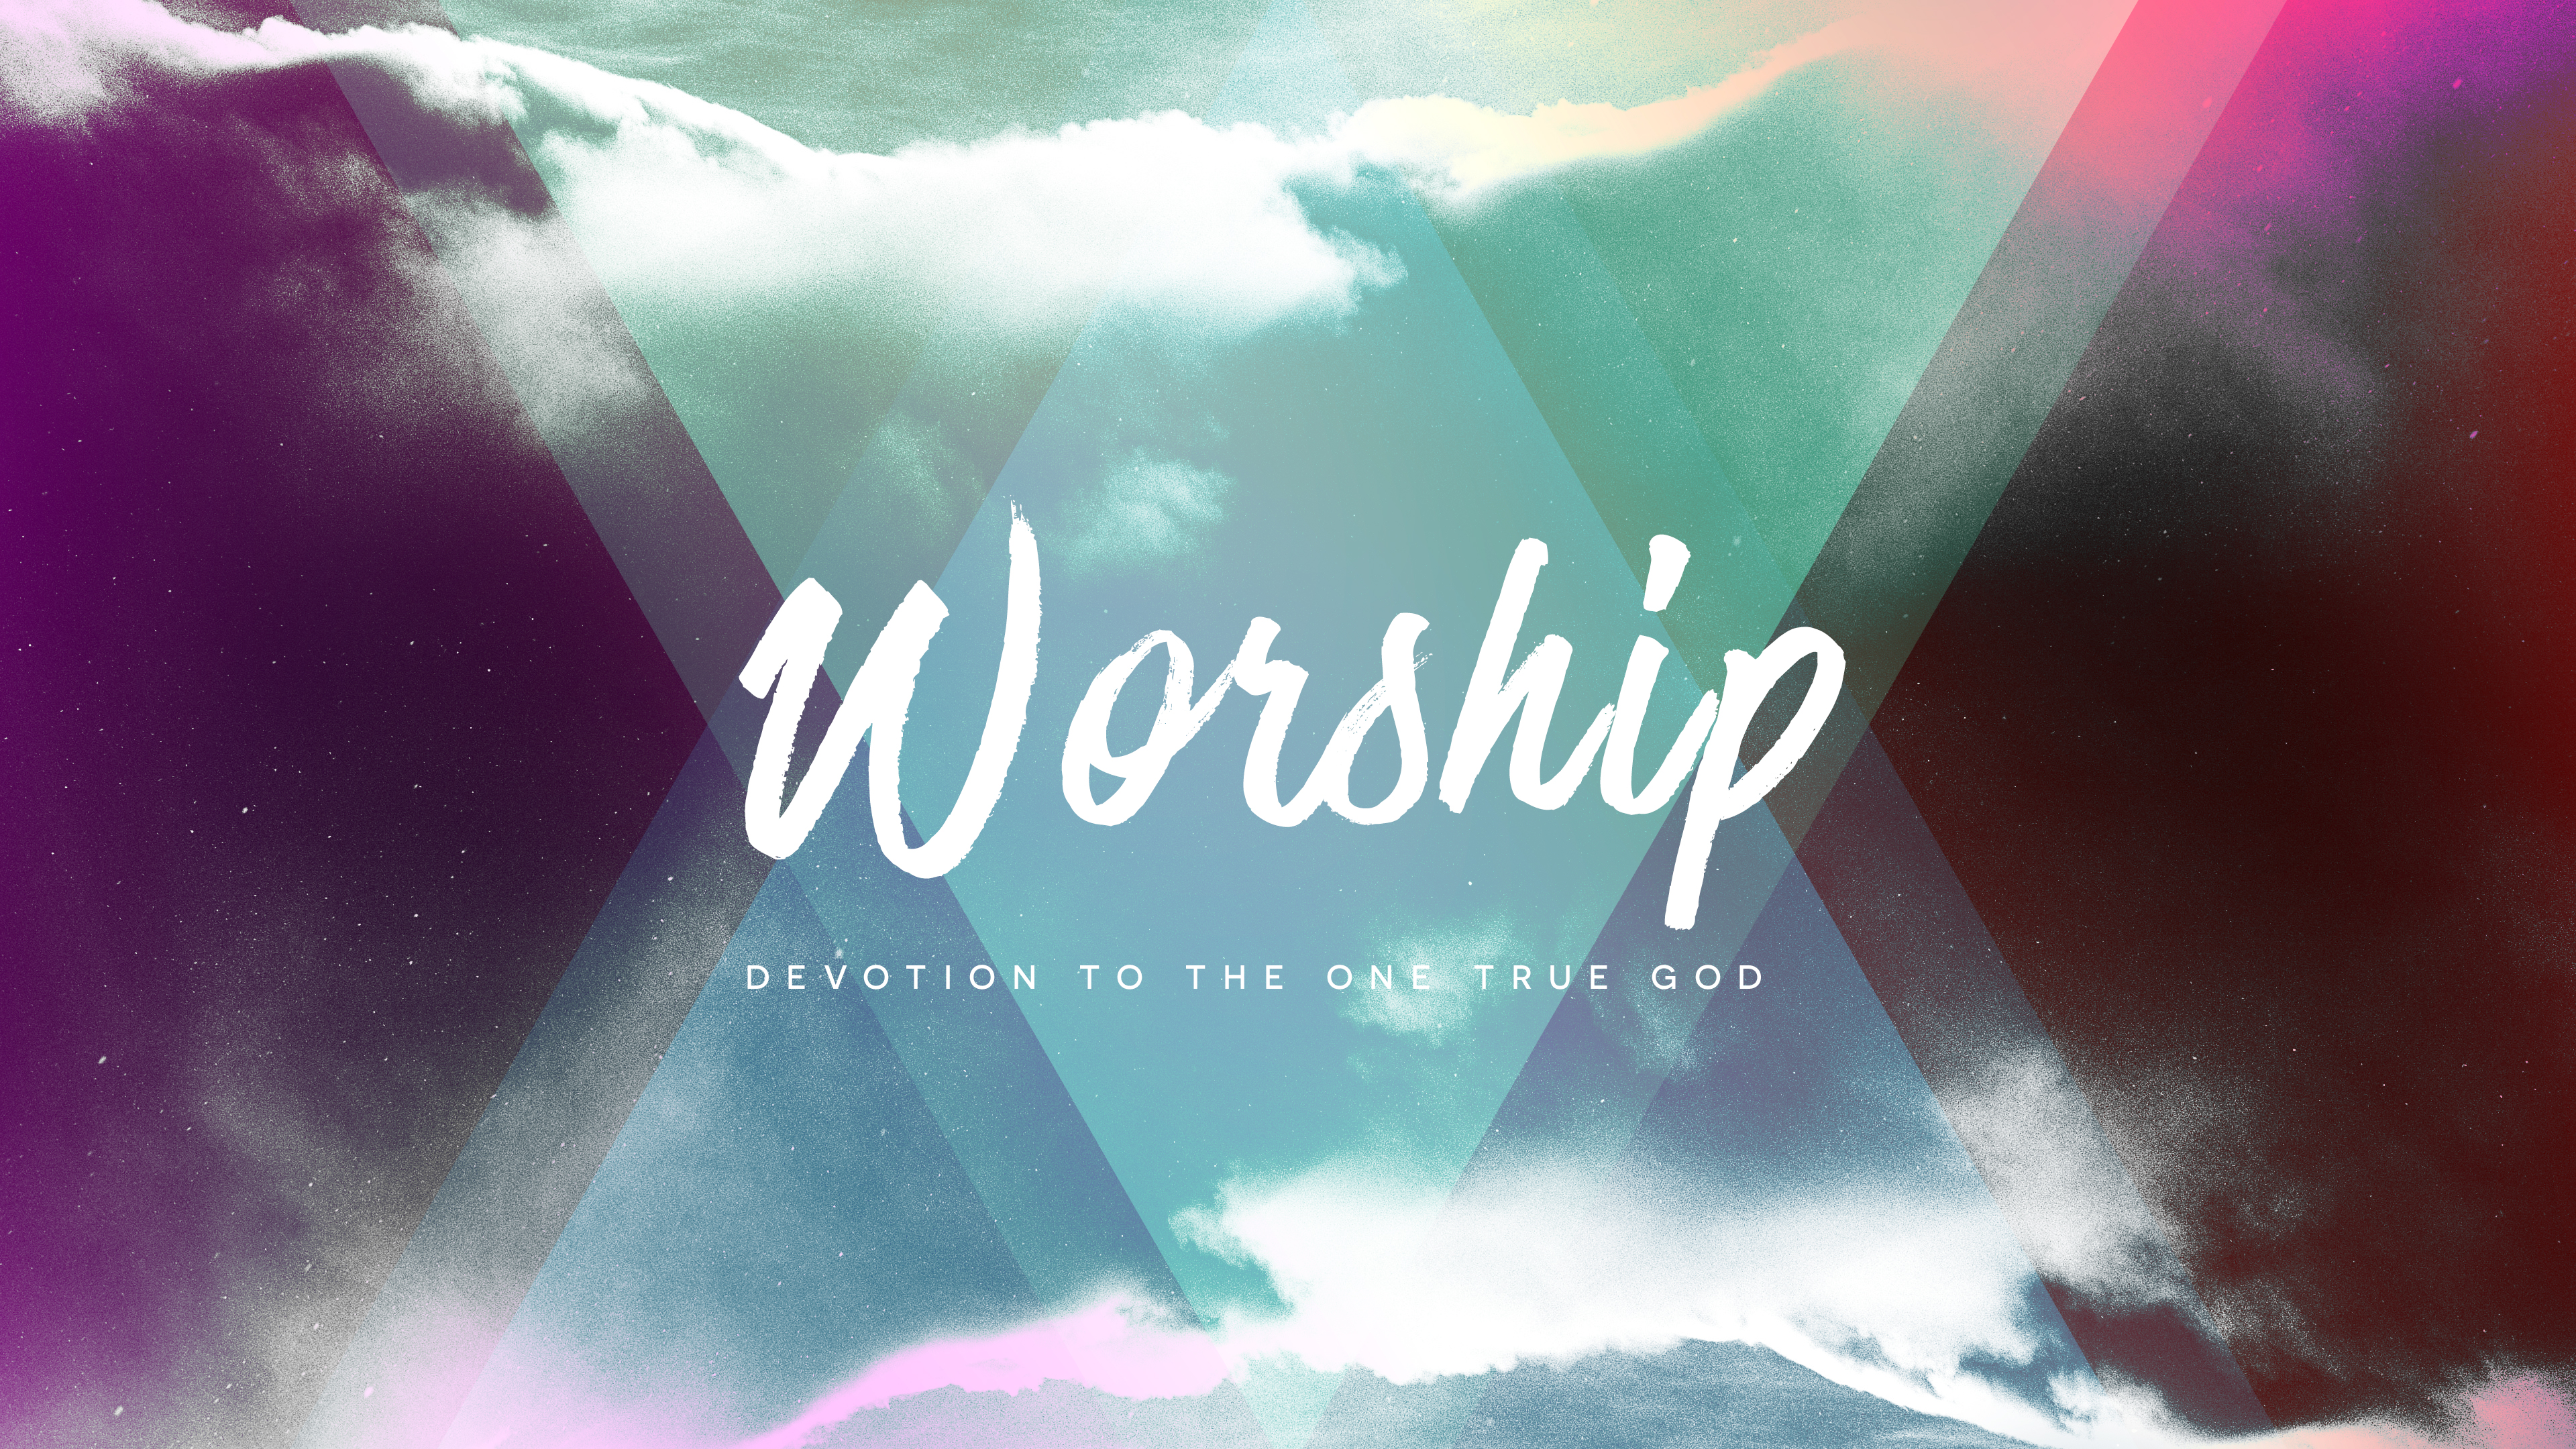 Worship is Adoration